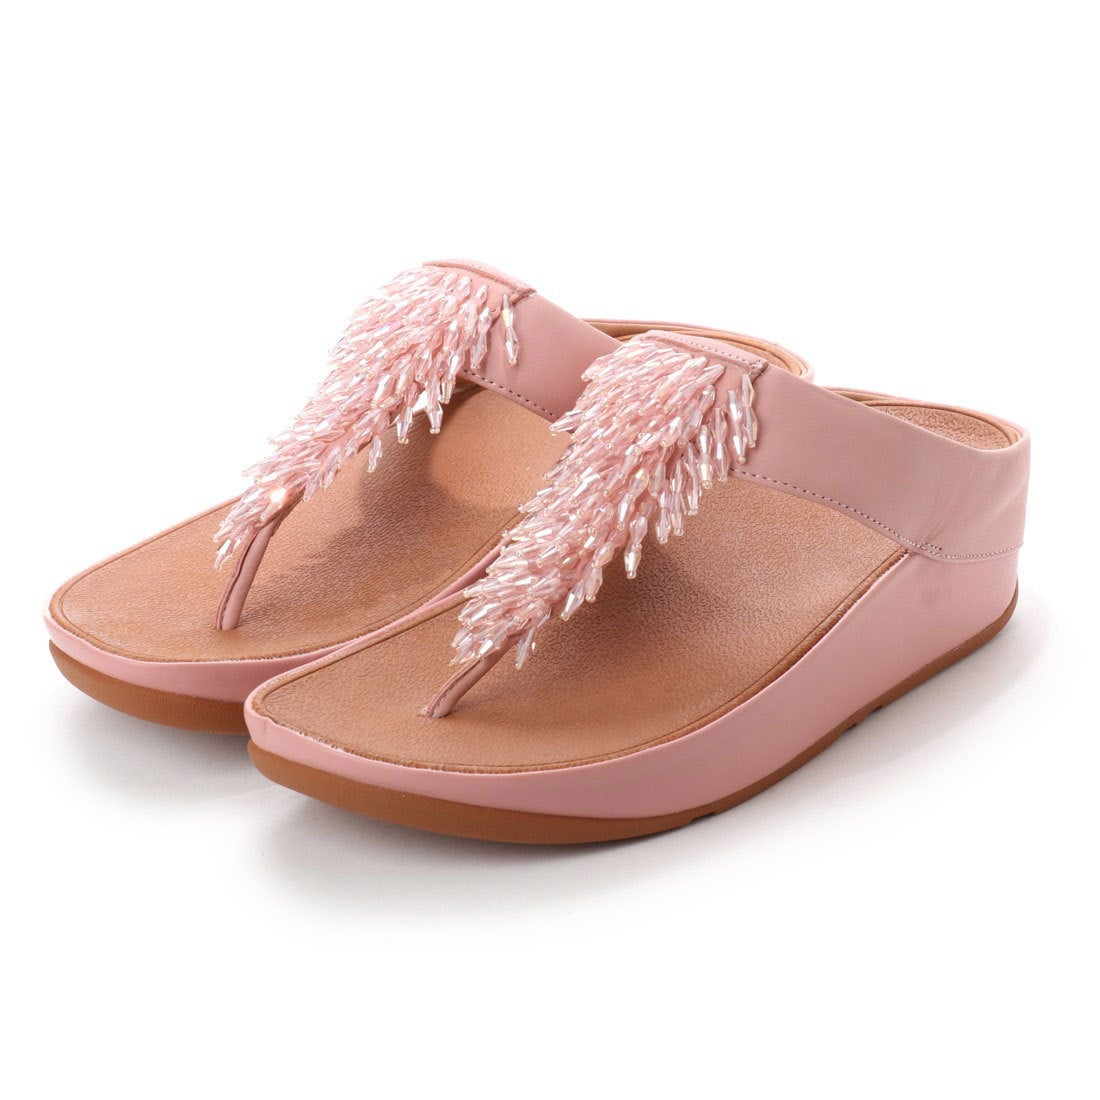 b456a81e89d fitflop フィットフロップ FitFlop RUMBA TOE-THONG SANDALS (Dusky Pink) -アウトレット通販  ロコレット (LOCOLET)